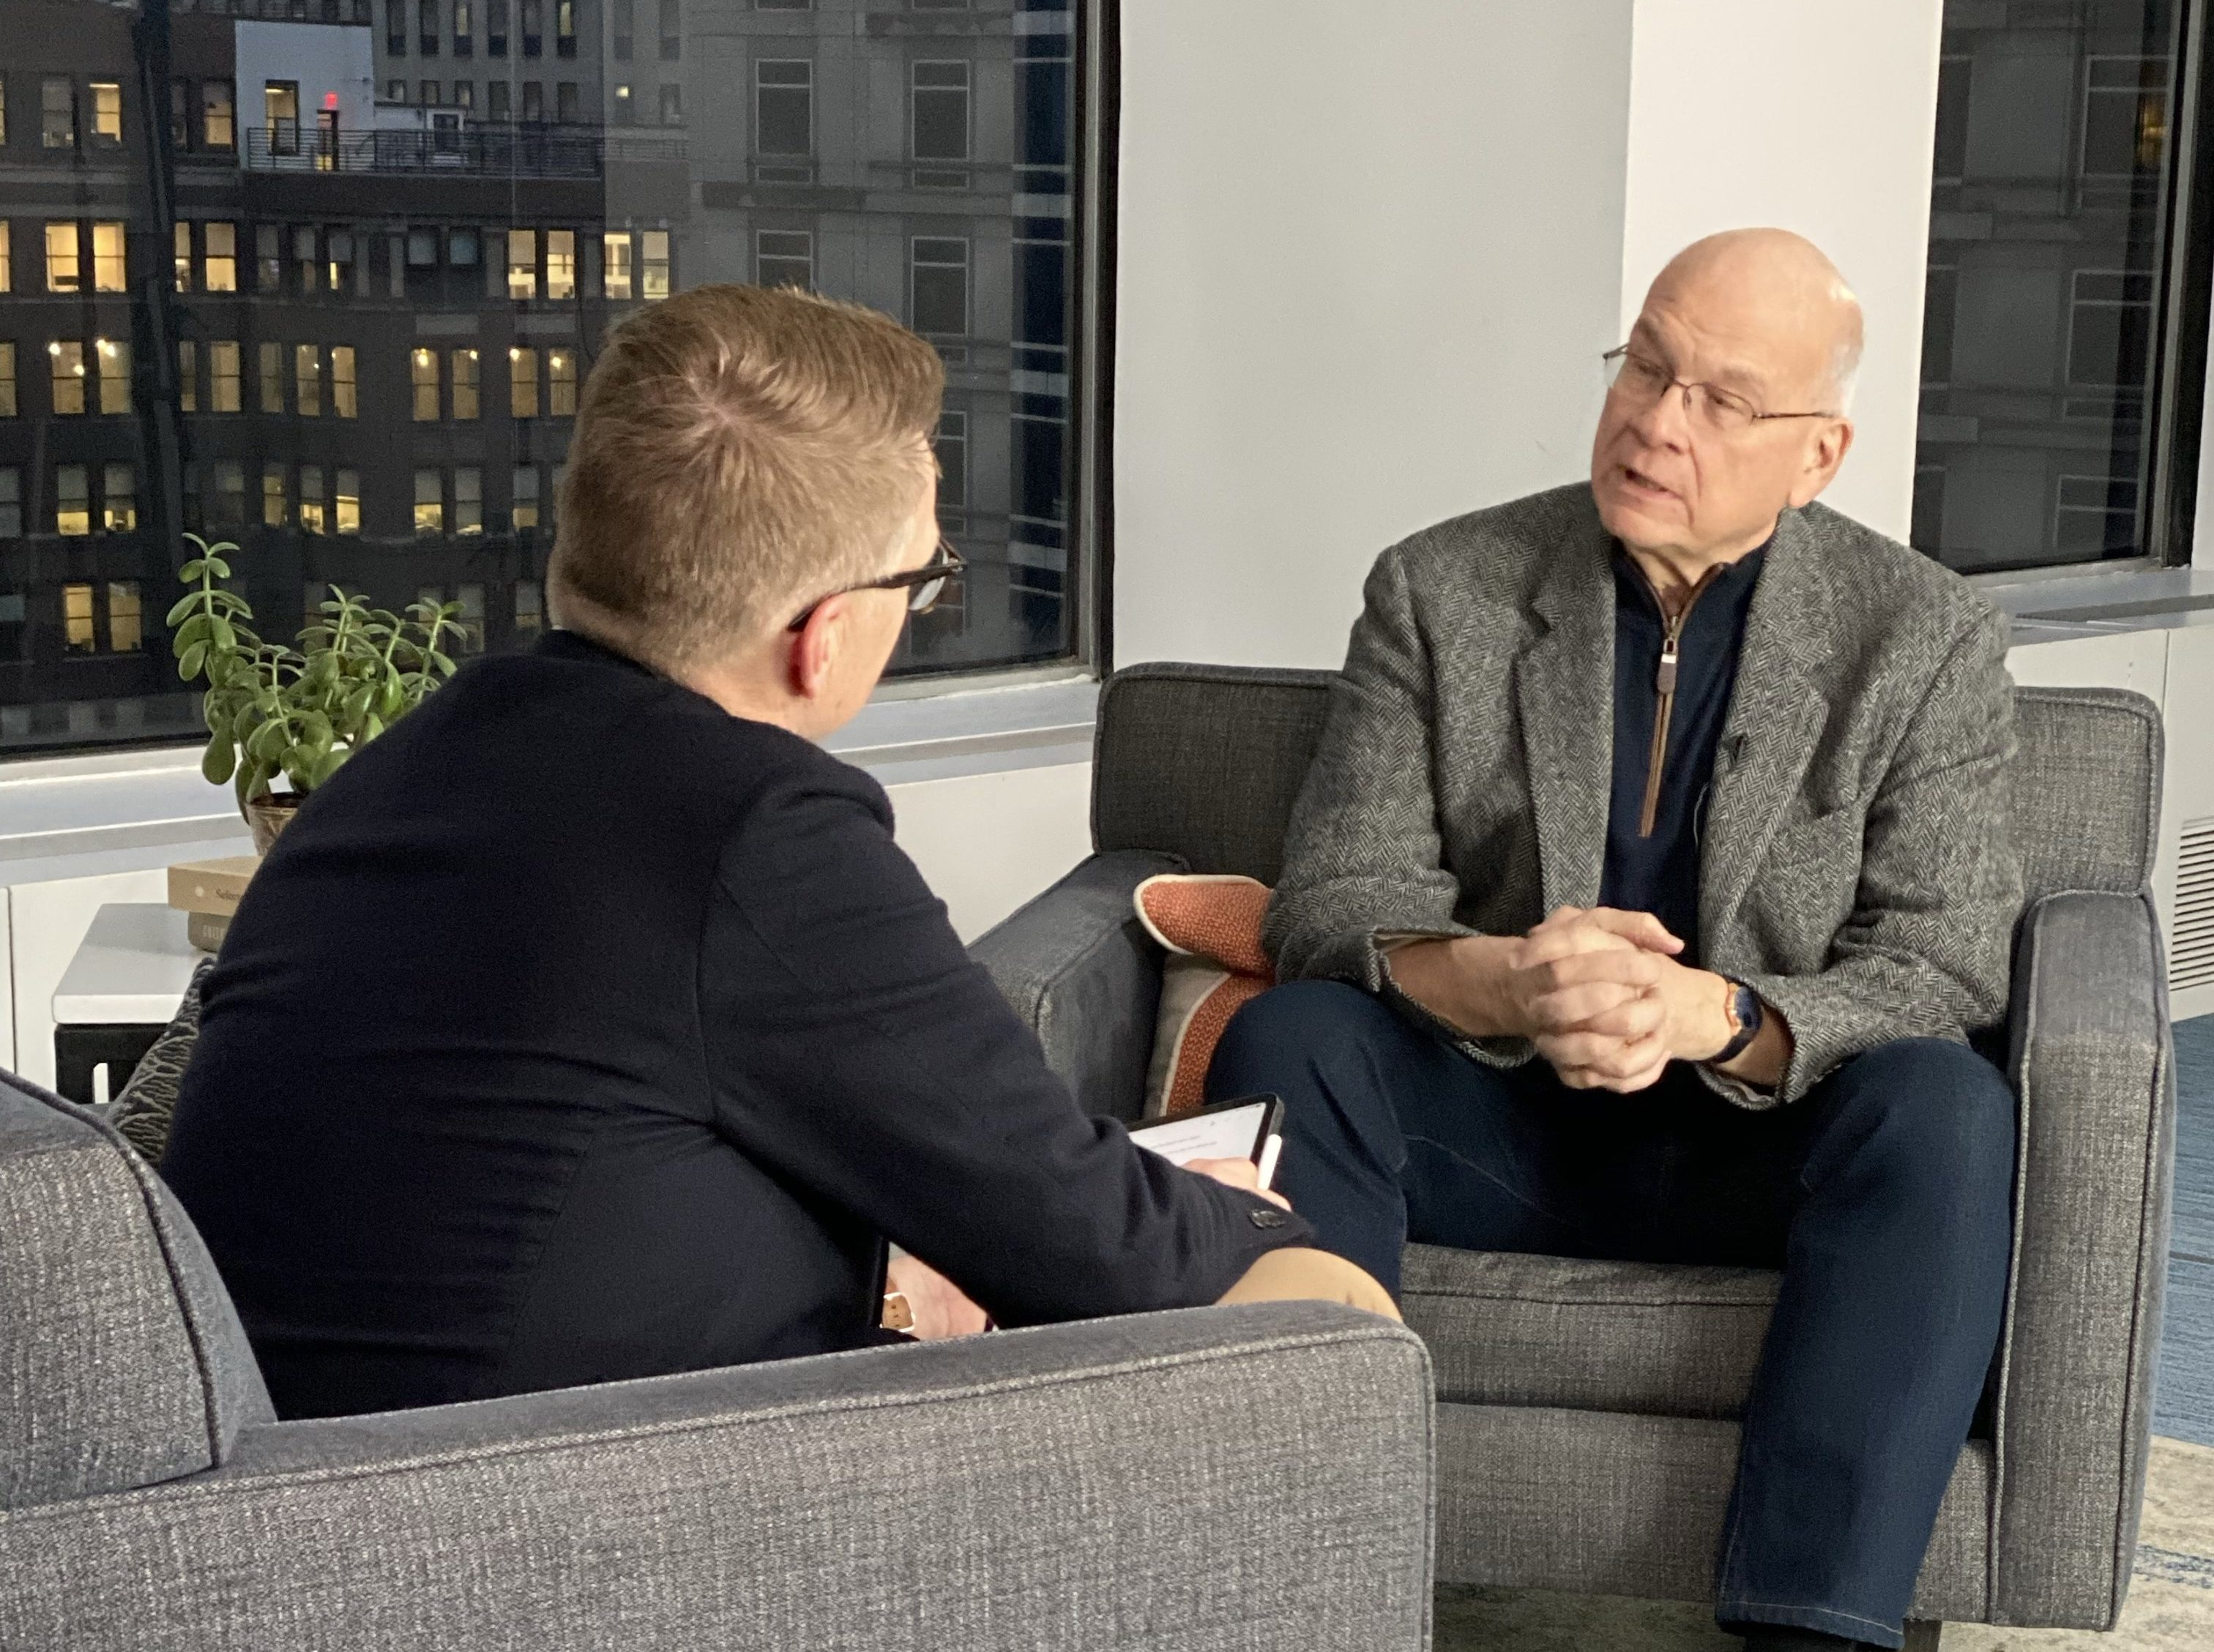 CNLP 339: Tim Keller on How to Bring the Gospel to Post-Christian America, How He'd Preach Today if He was Starting Over Again, Why Founders Get Addicted to Their Churches and Why He Left Redeemer